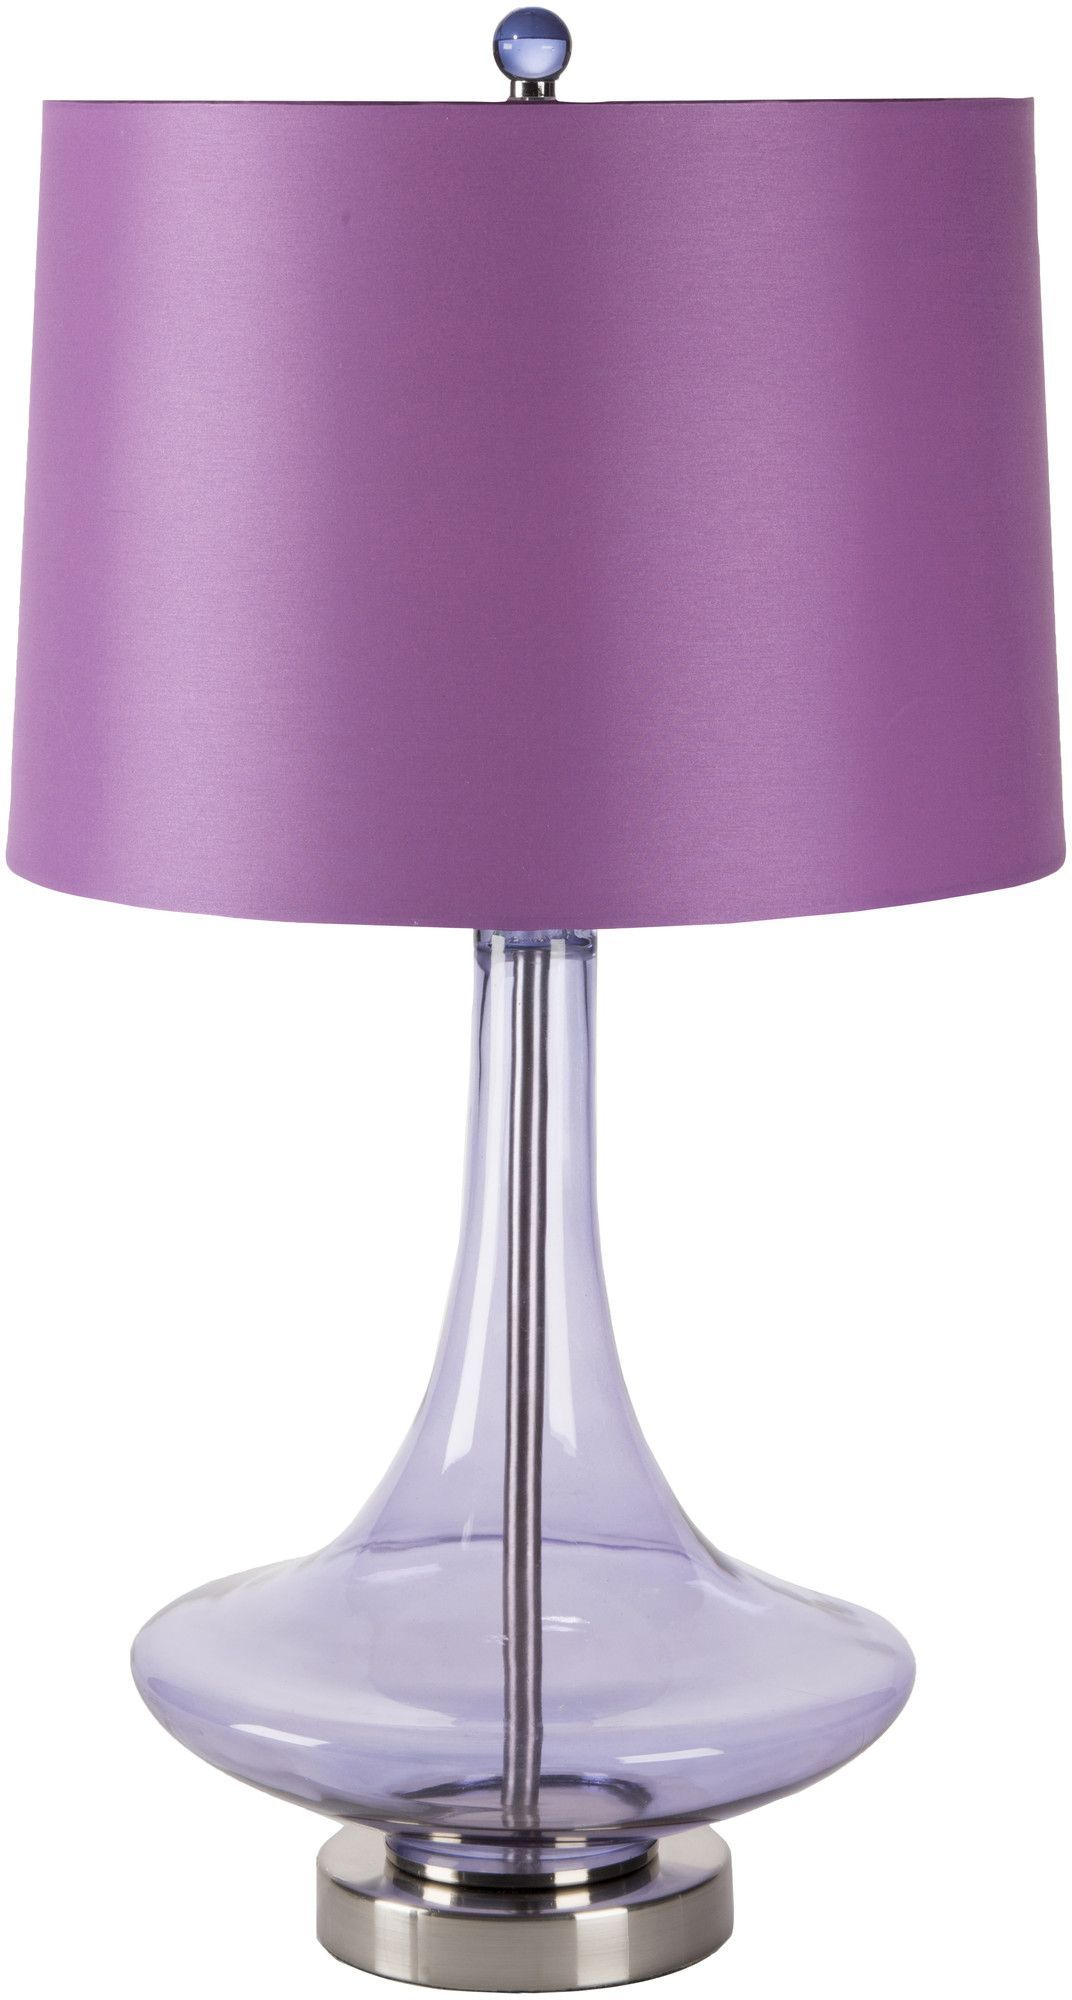 "Amber 14"" H Table Lamp with Empire Shade"